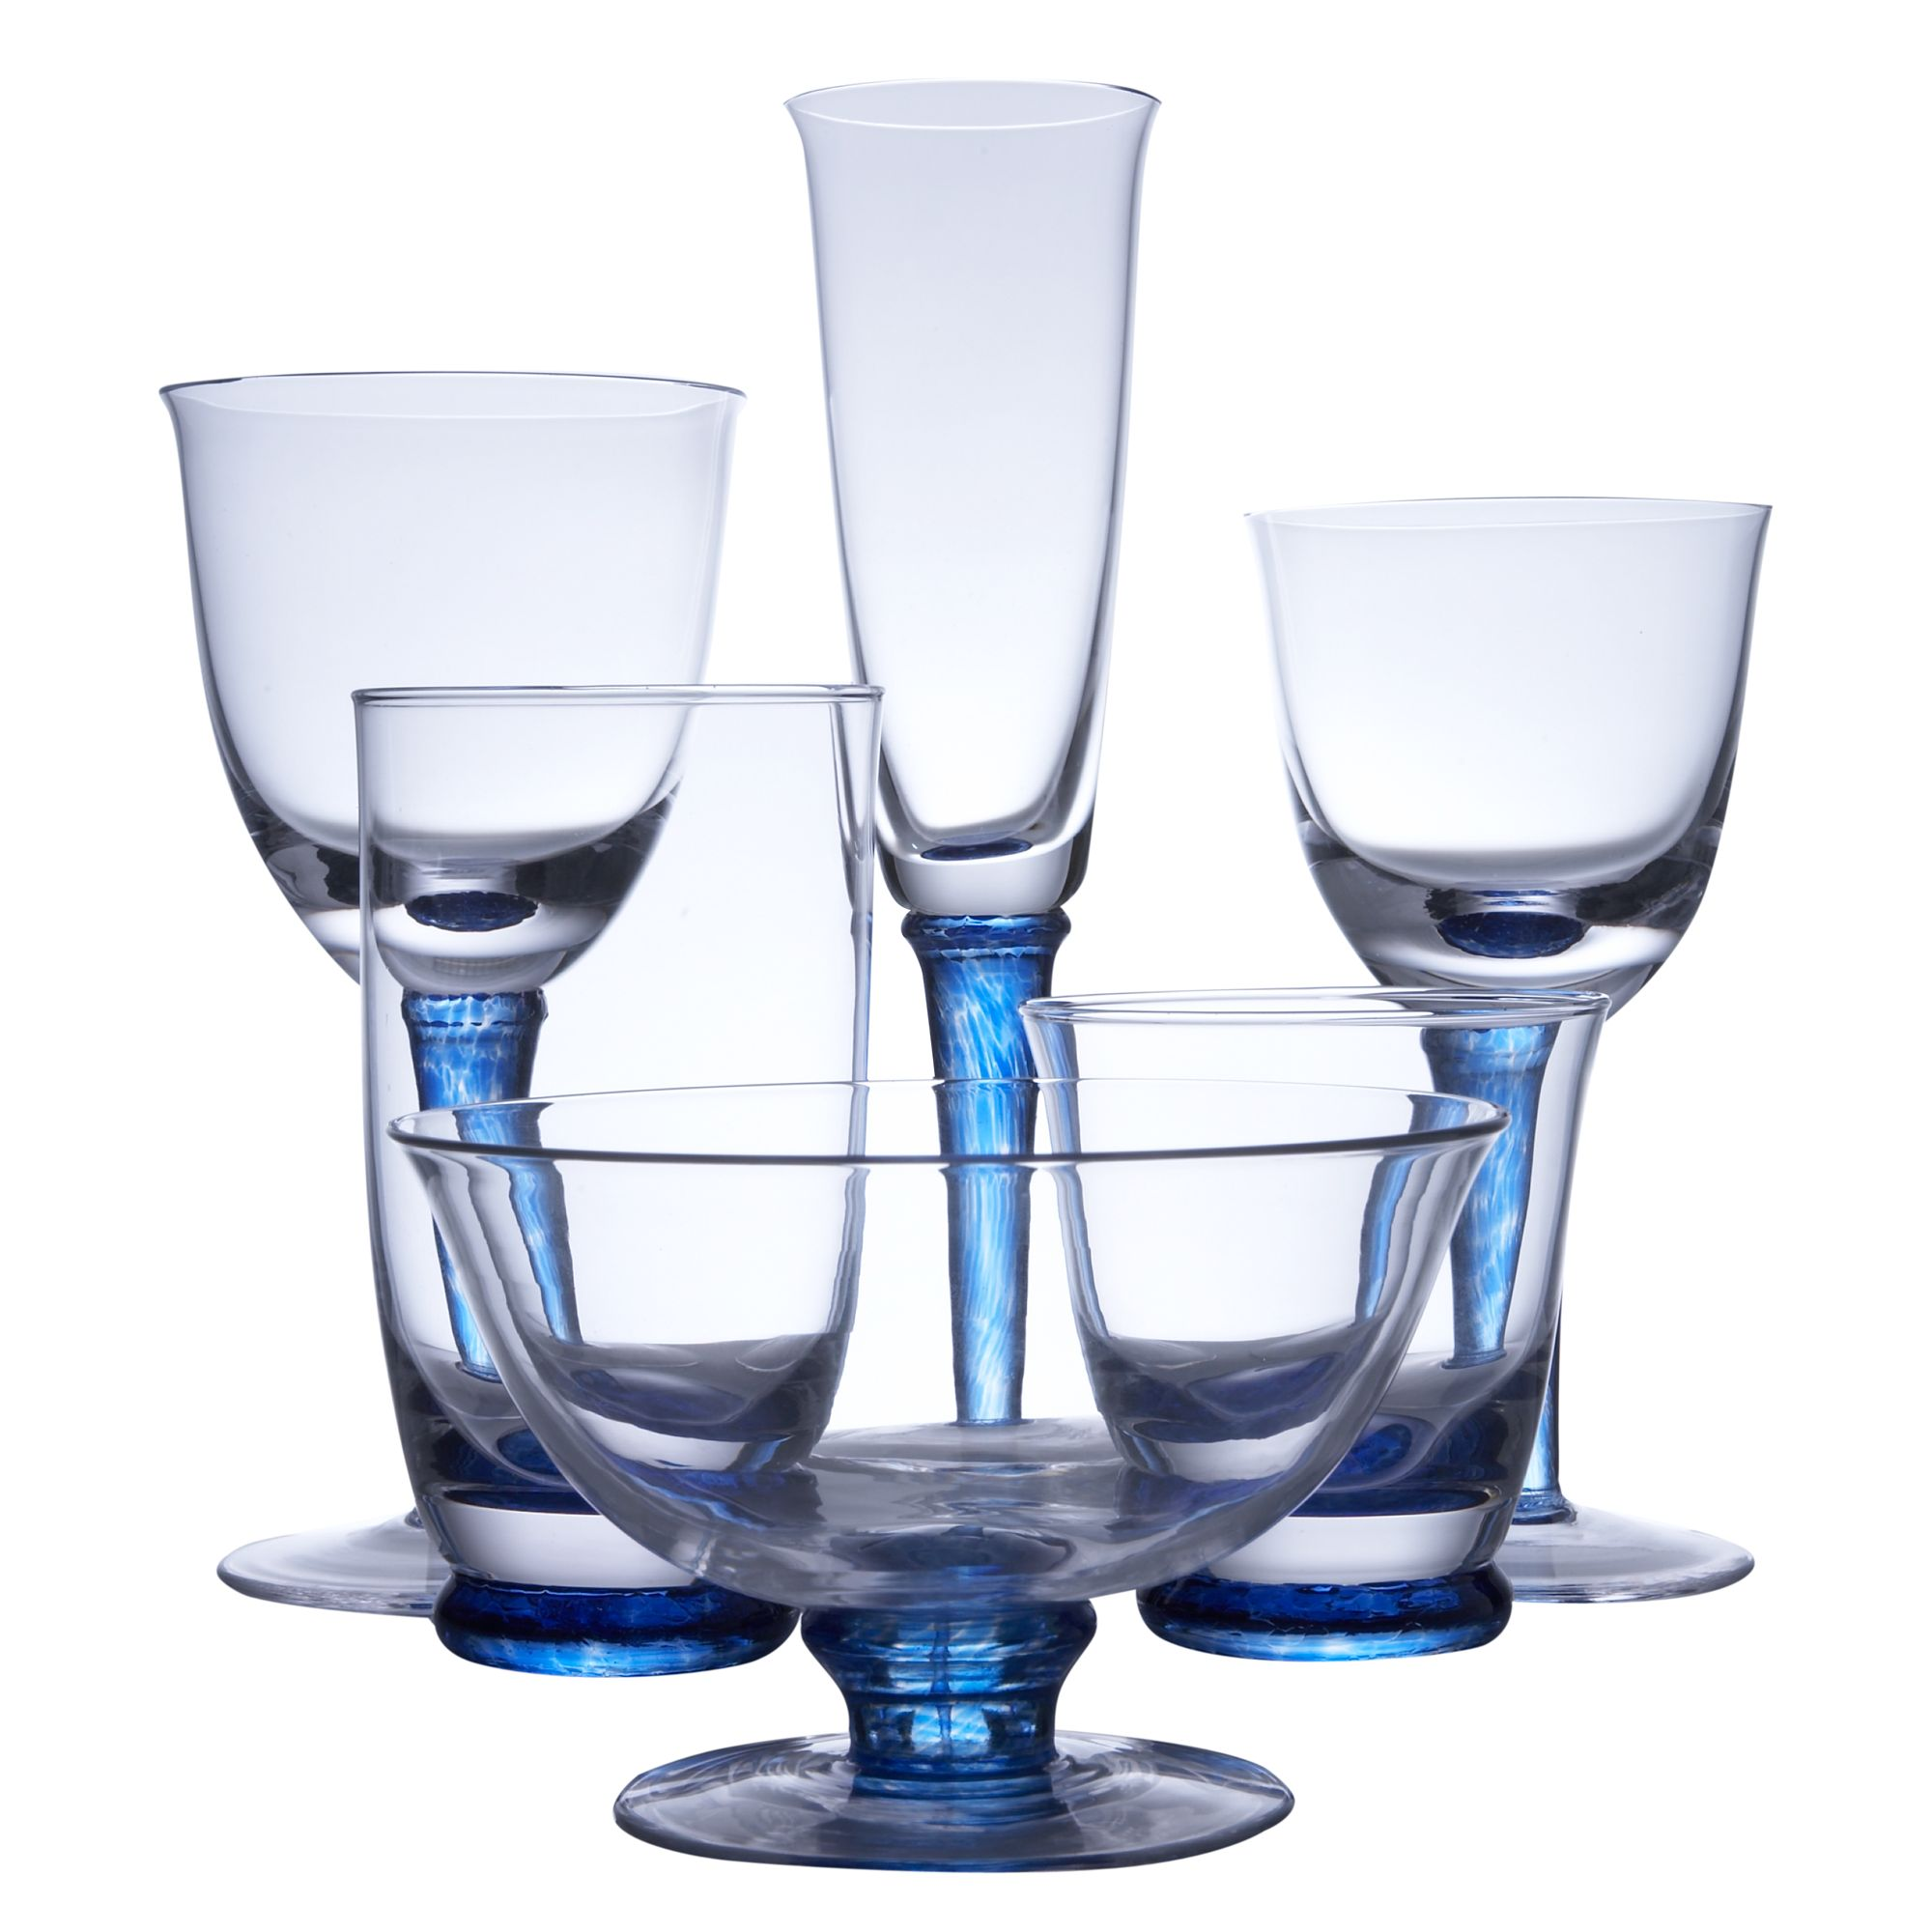 Denby Imperial Blue set of two white wine glasses